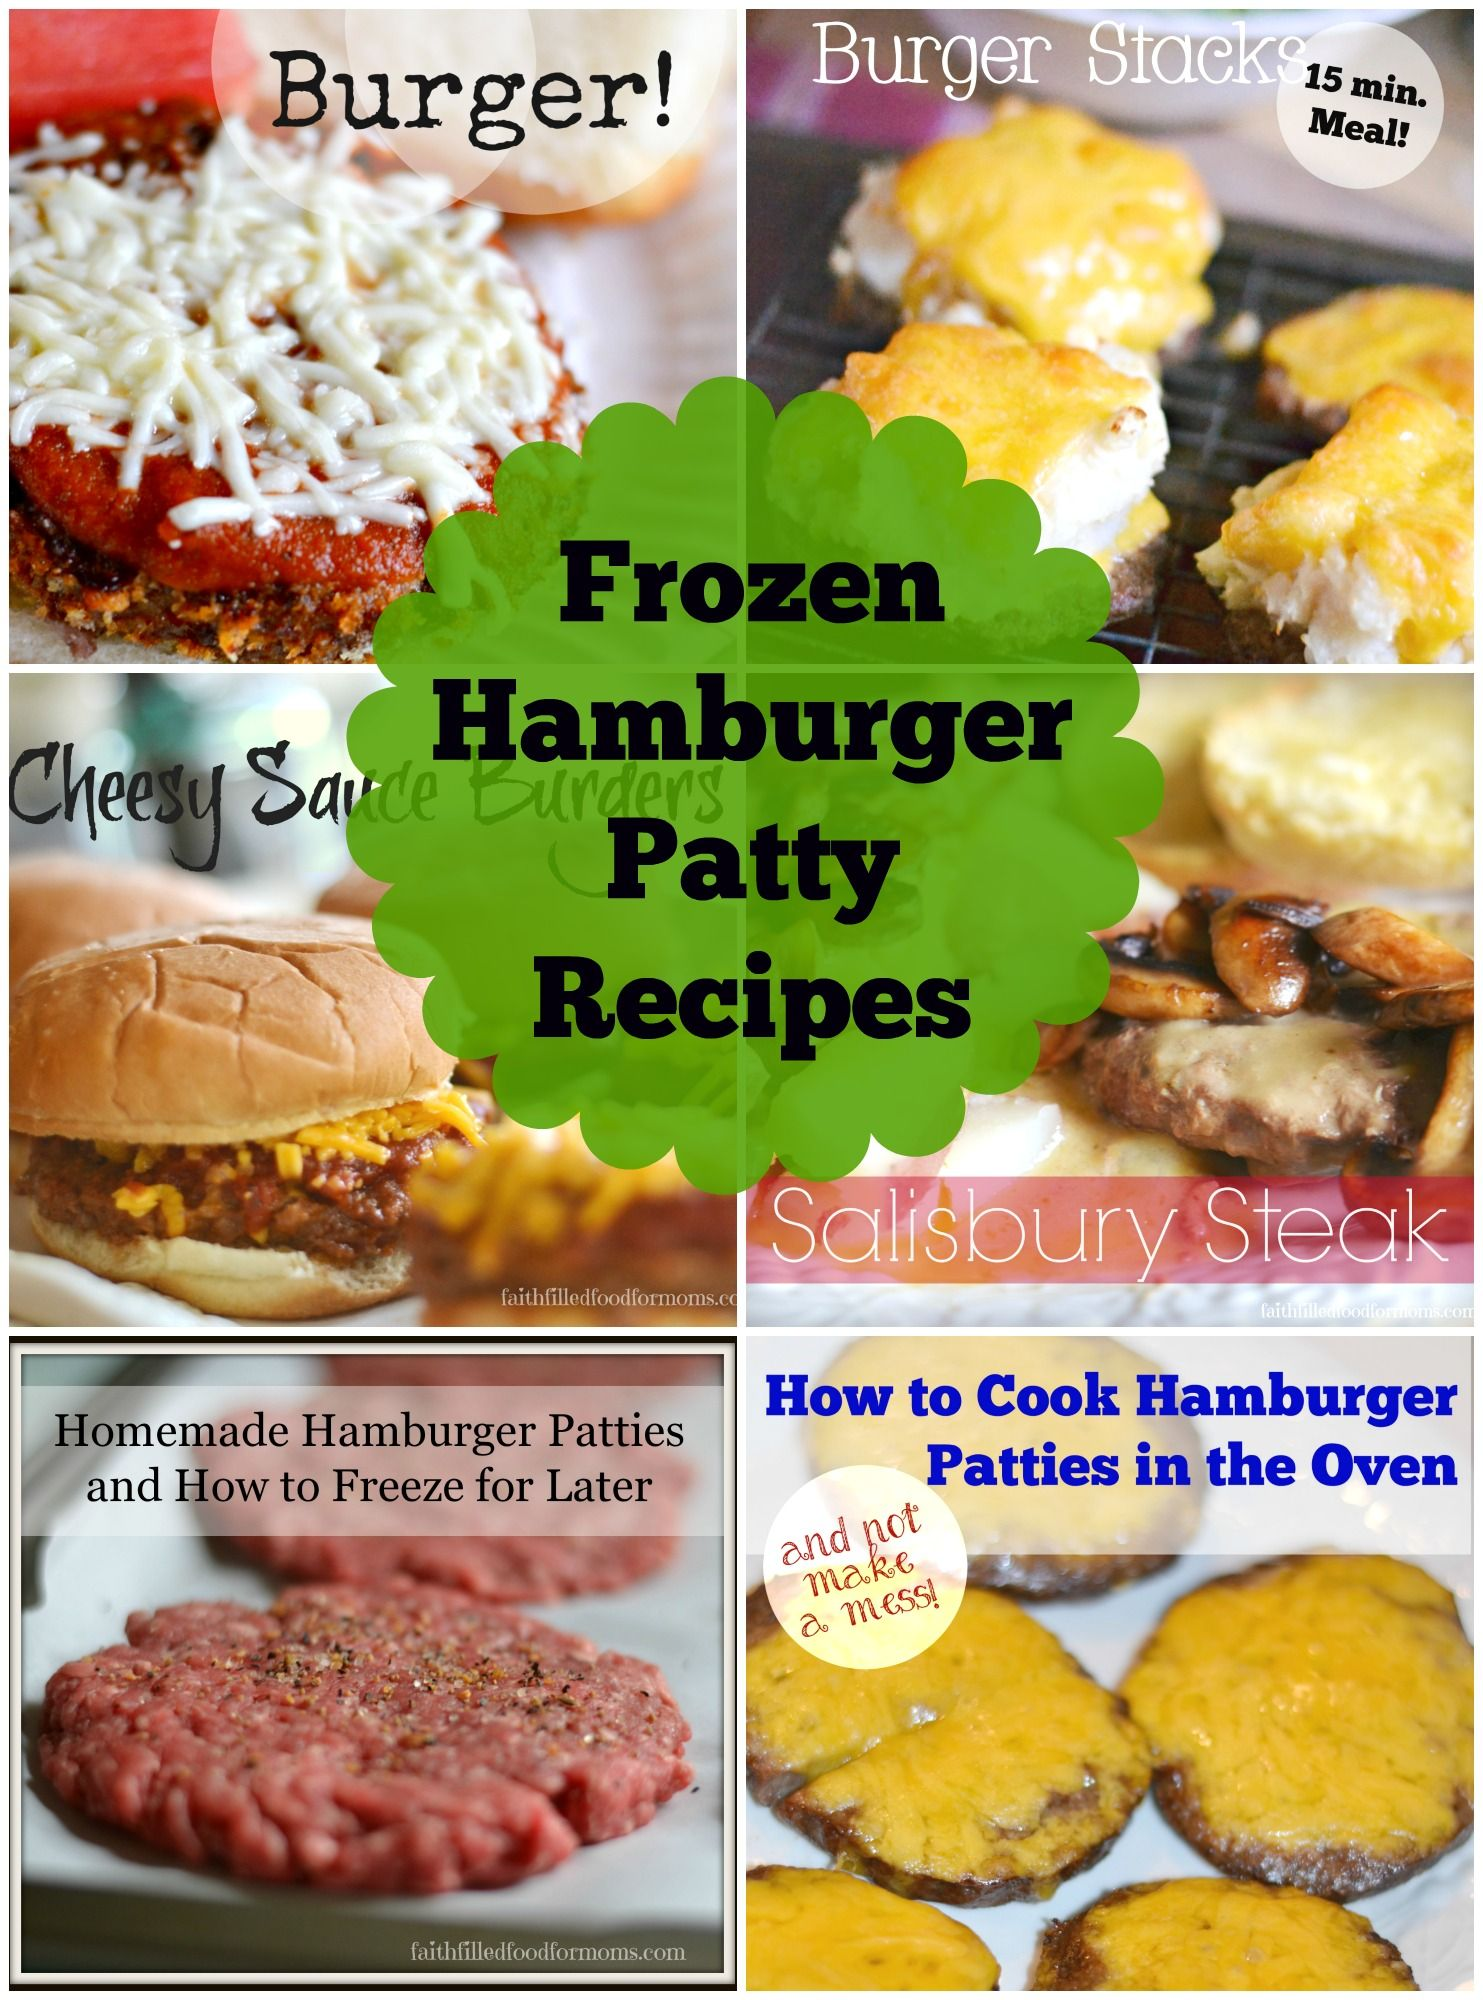 6 Easy Meals Using Frozen Hamburger Patties